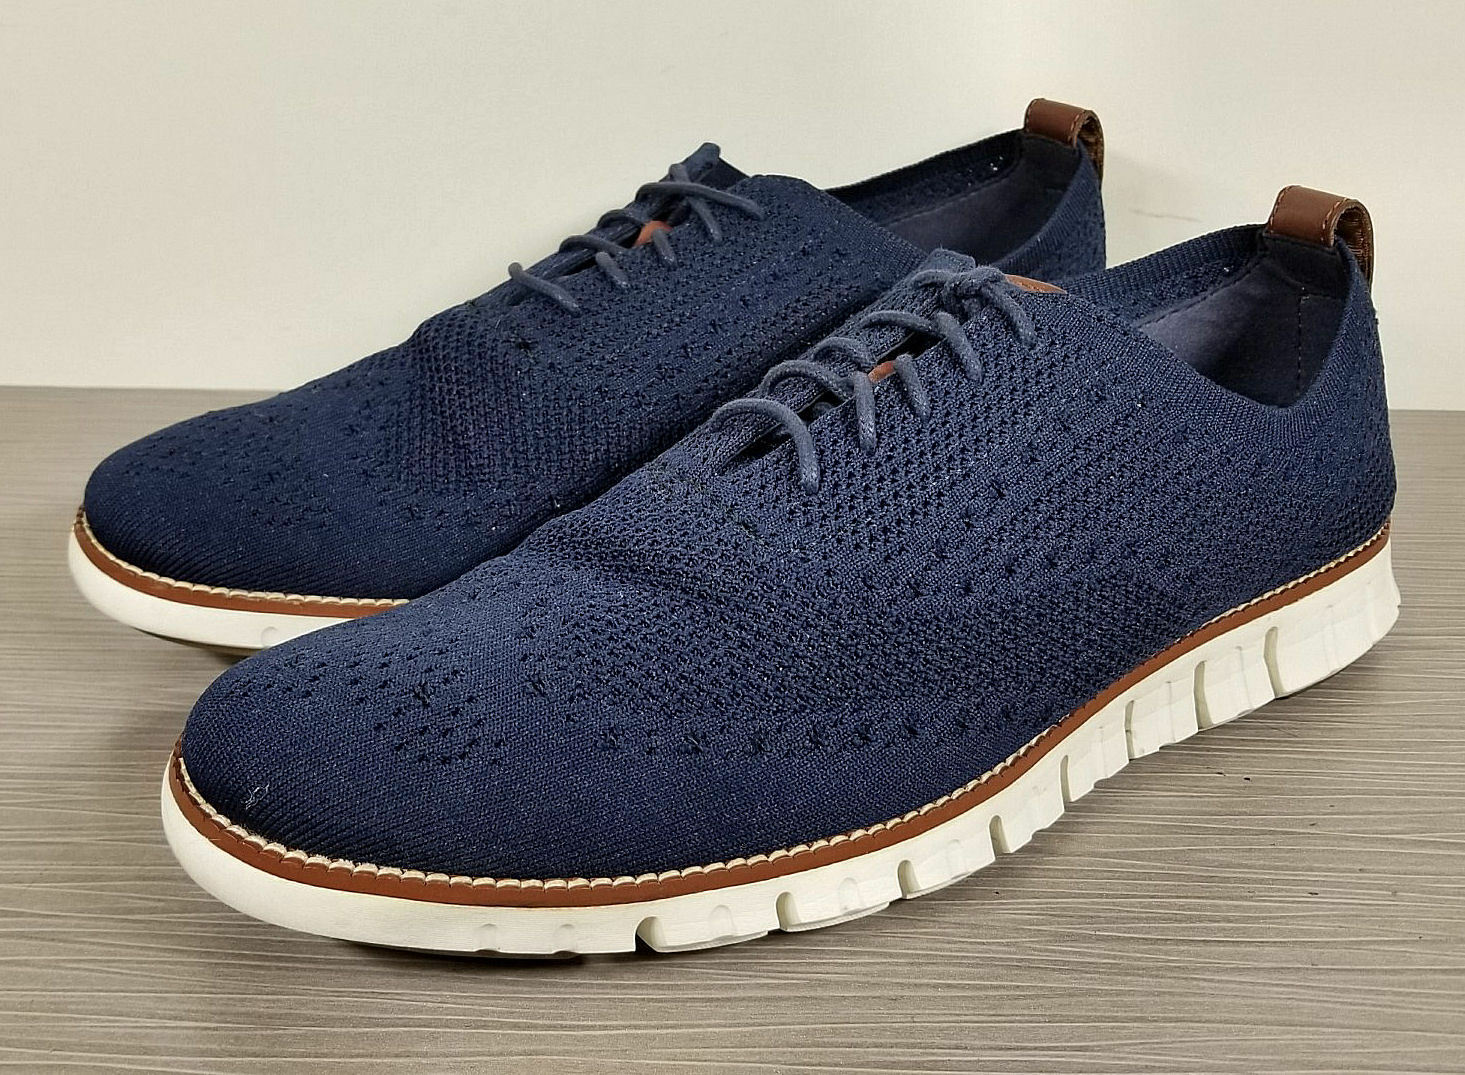 COLE HAAN ZeroGrand Stitch Lite Knit Brogue shoes, bluee, Mens Size 11.5 M